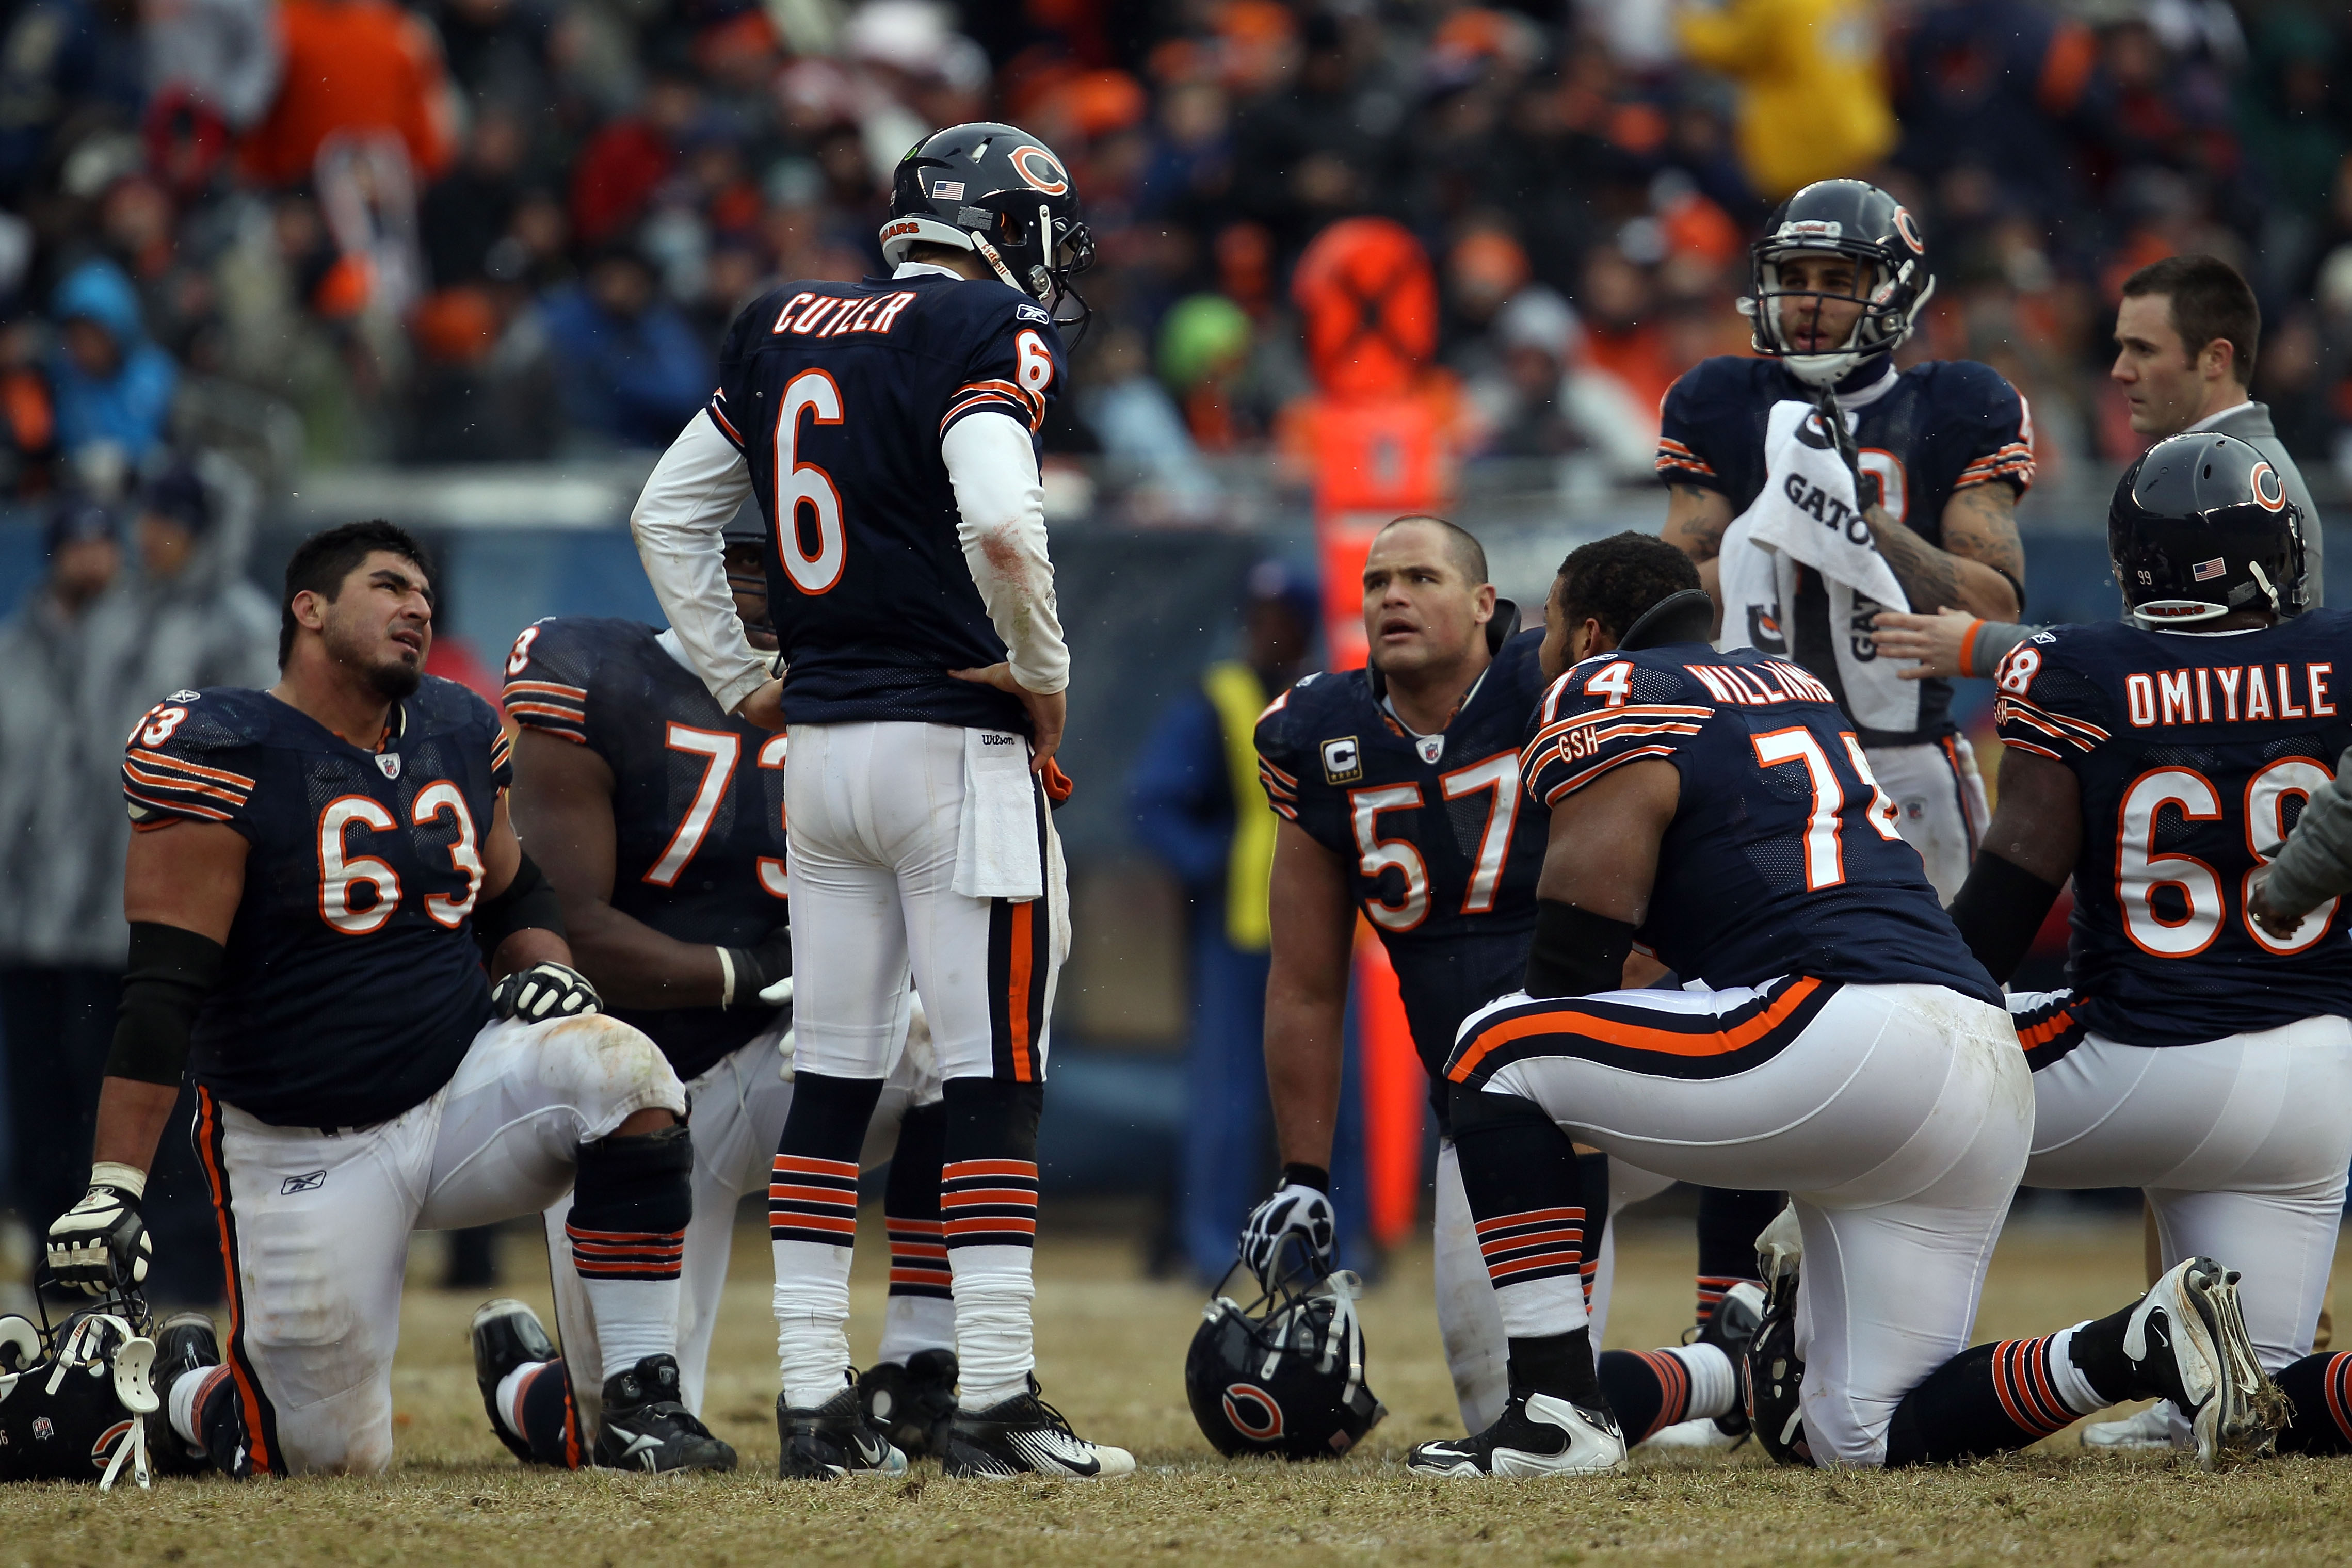 CHICAGO, IL - JANUARY 16:  Quarterback Jay Cutler #6 of the Chicago Bears talks with his offense as Marcus Trufant #23 of the Seattle Seahawks is injured on the field in the second half against the Seattle Seahawks in the 2011 NFC divisional playoff game